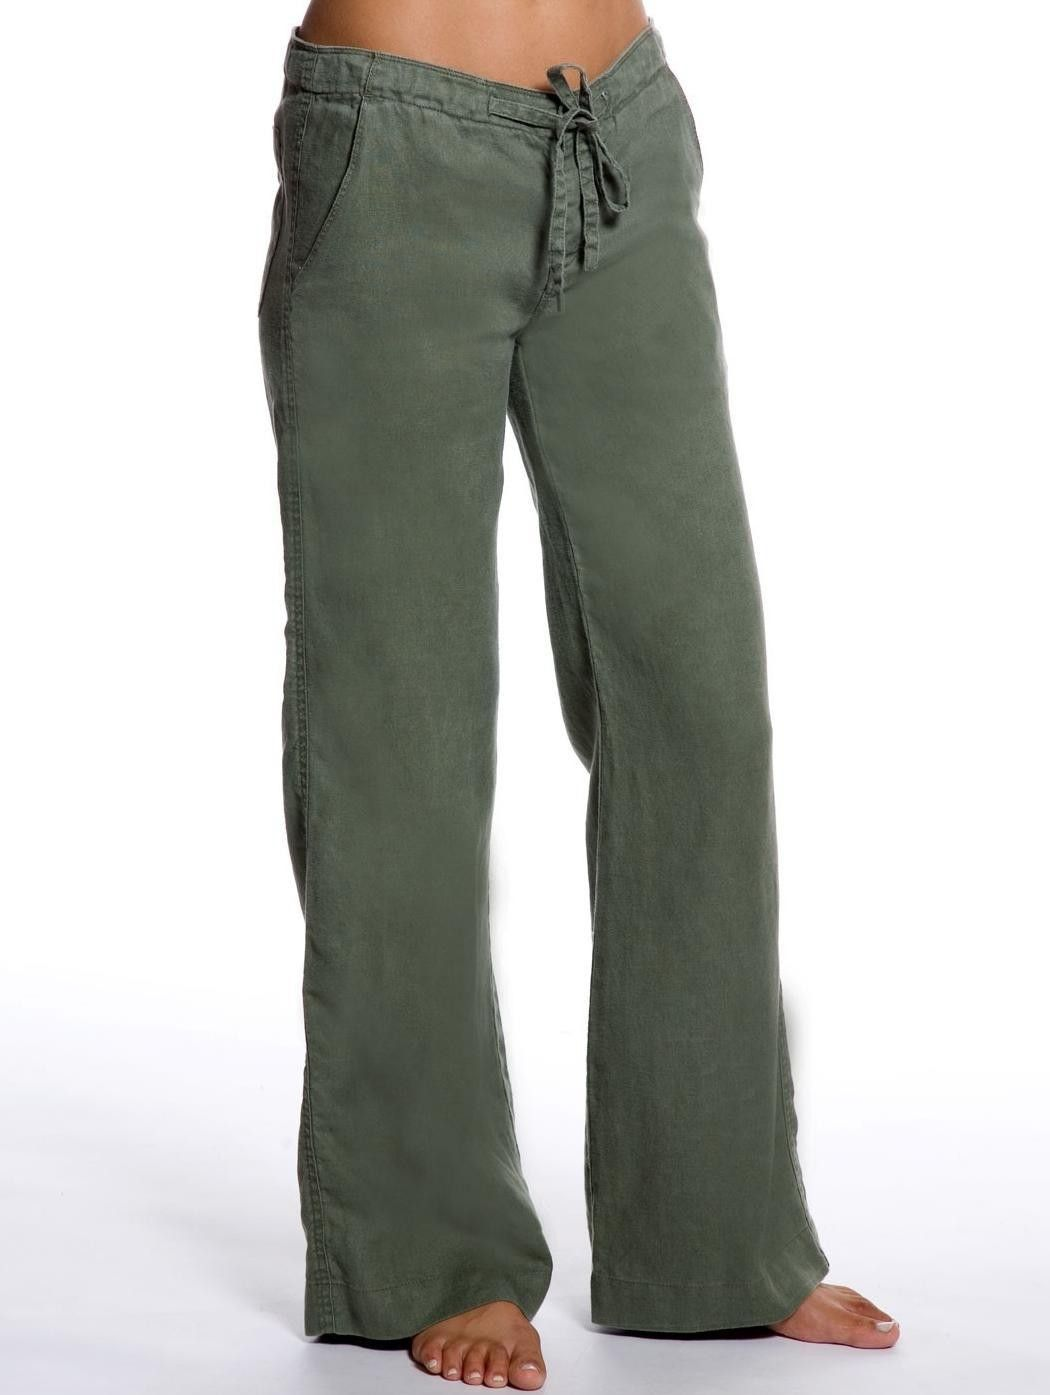 Olive Relaxed Linen Pants - Green Linen Pants for Women 156438ee18